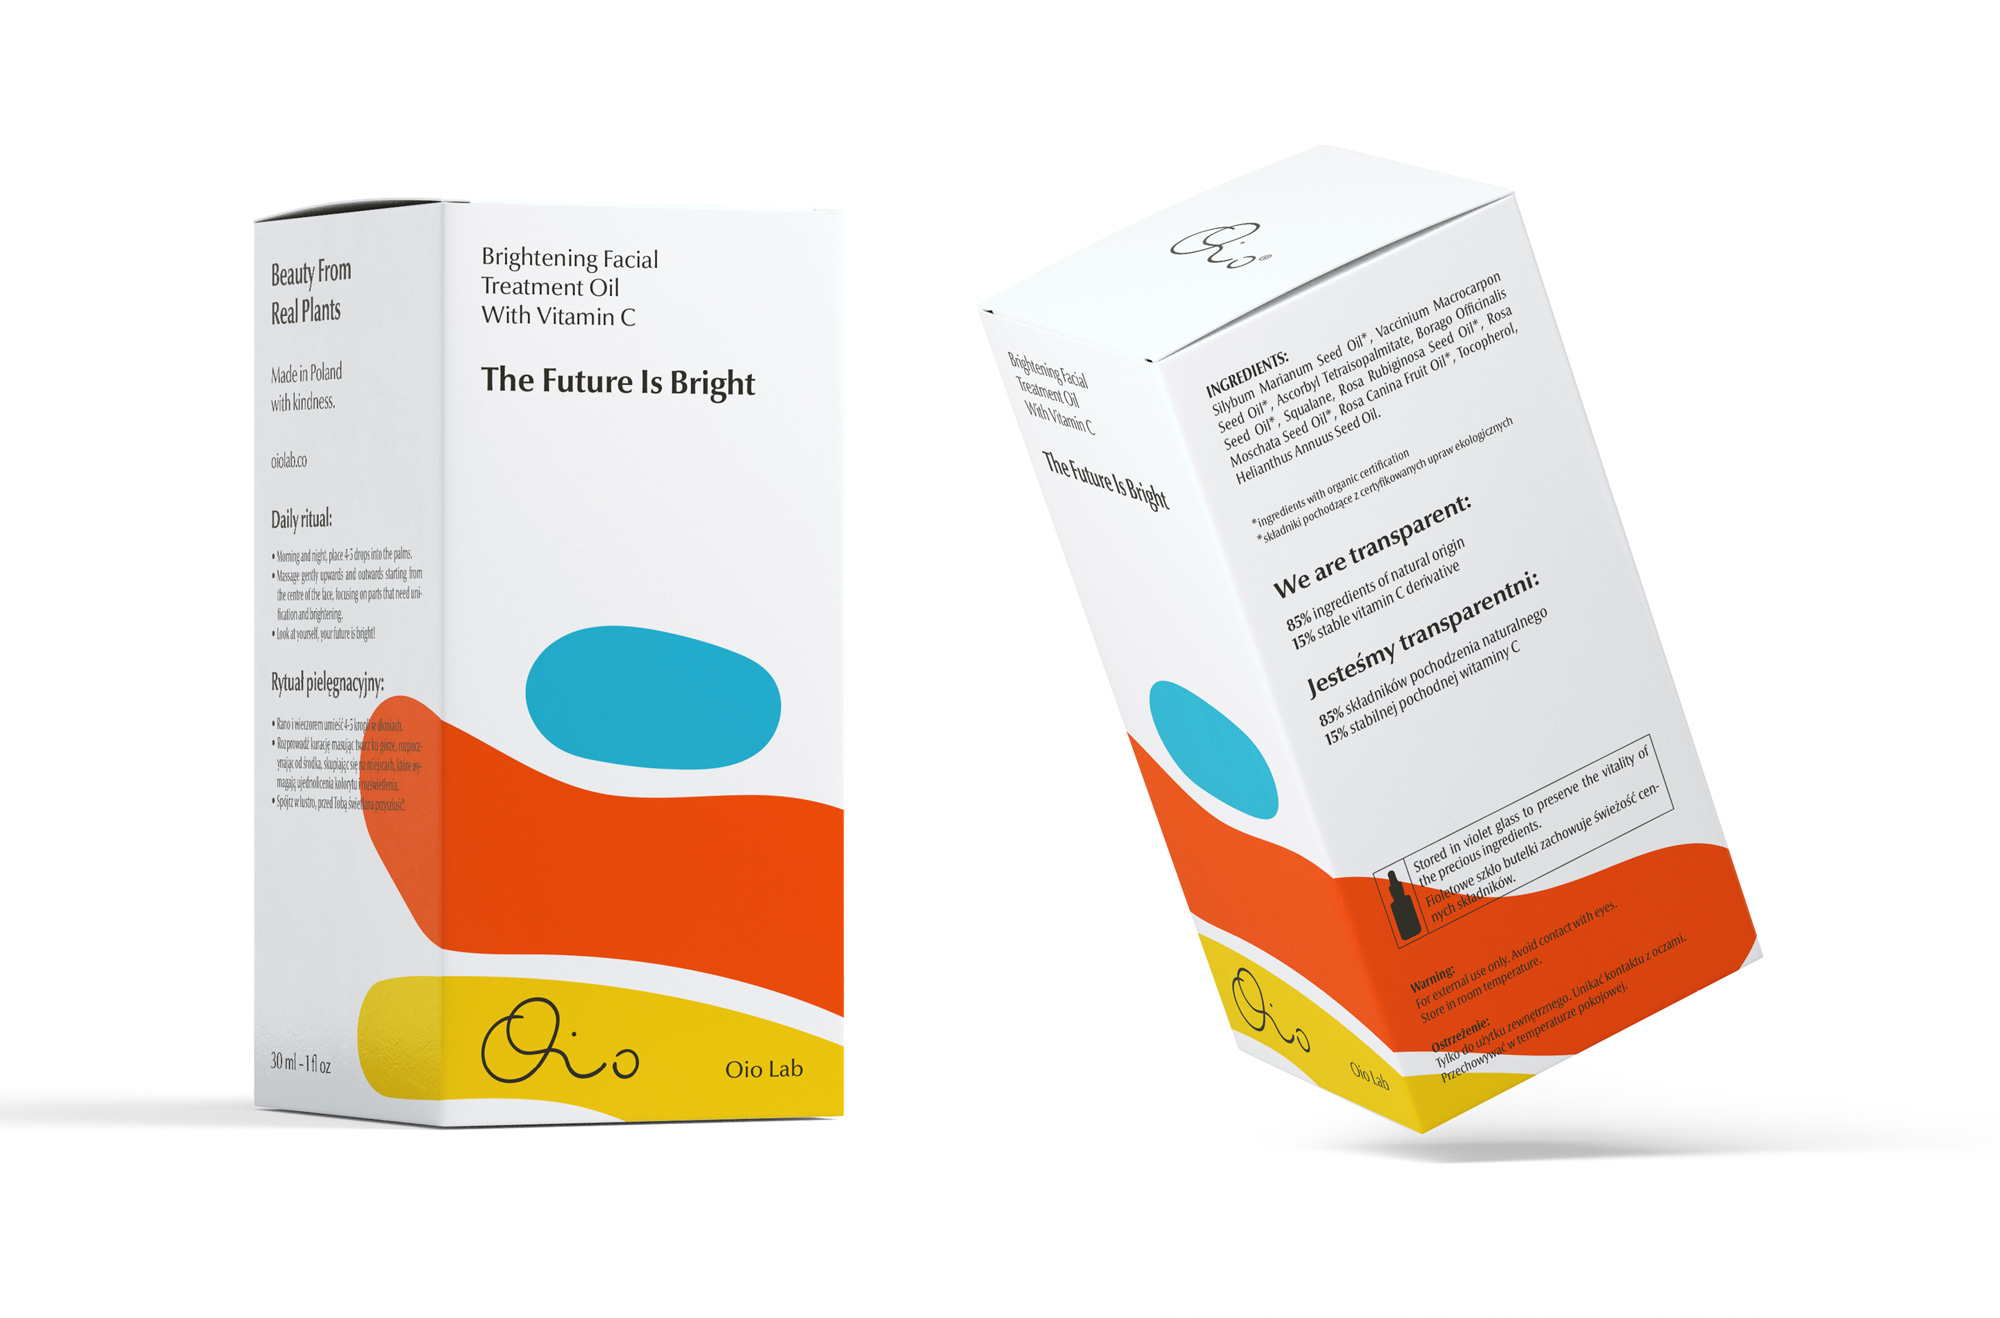 New Logo and Packaging for Oio Lab by Hugmun